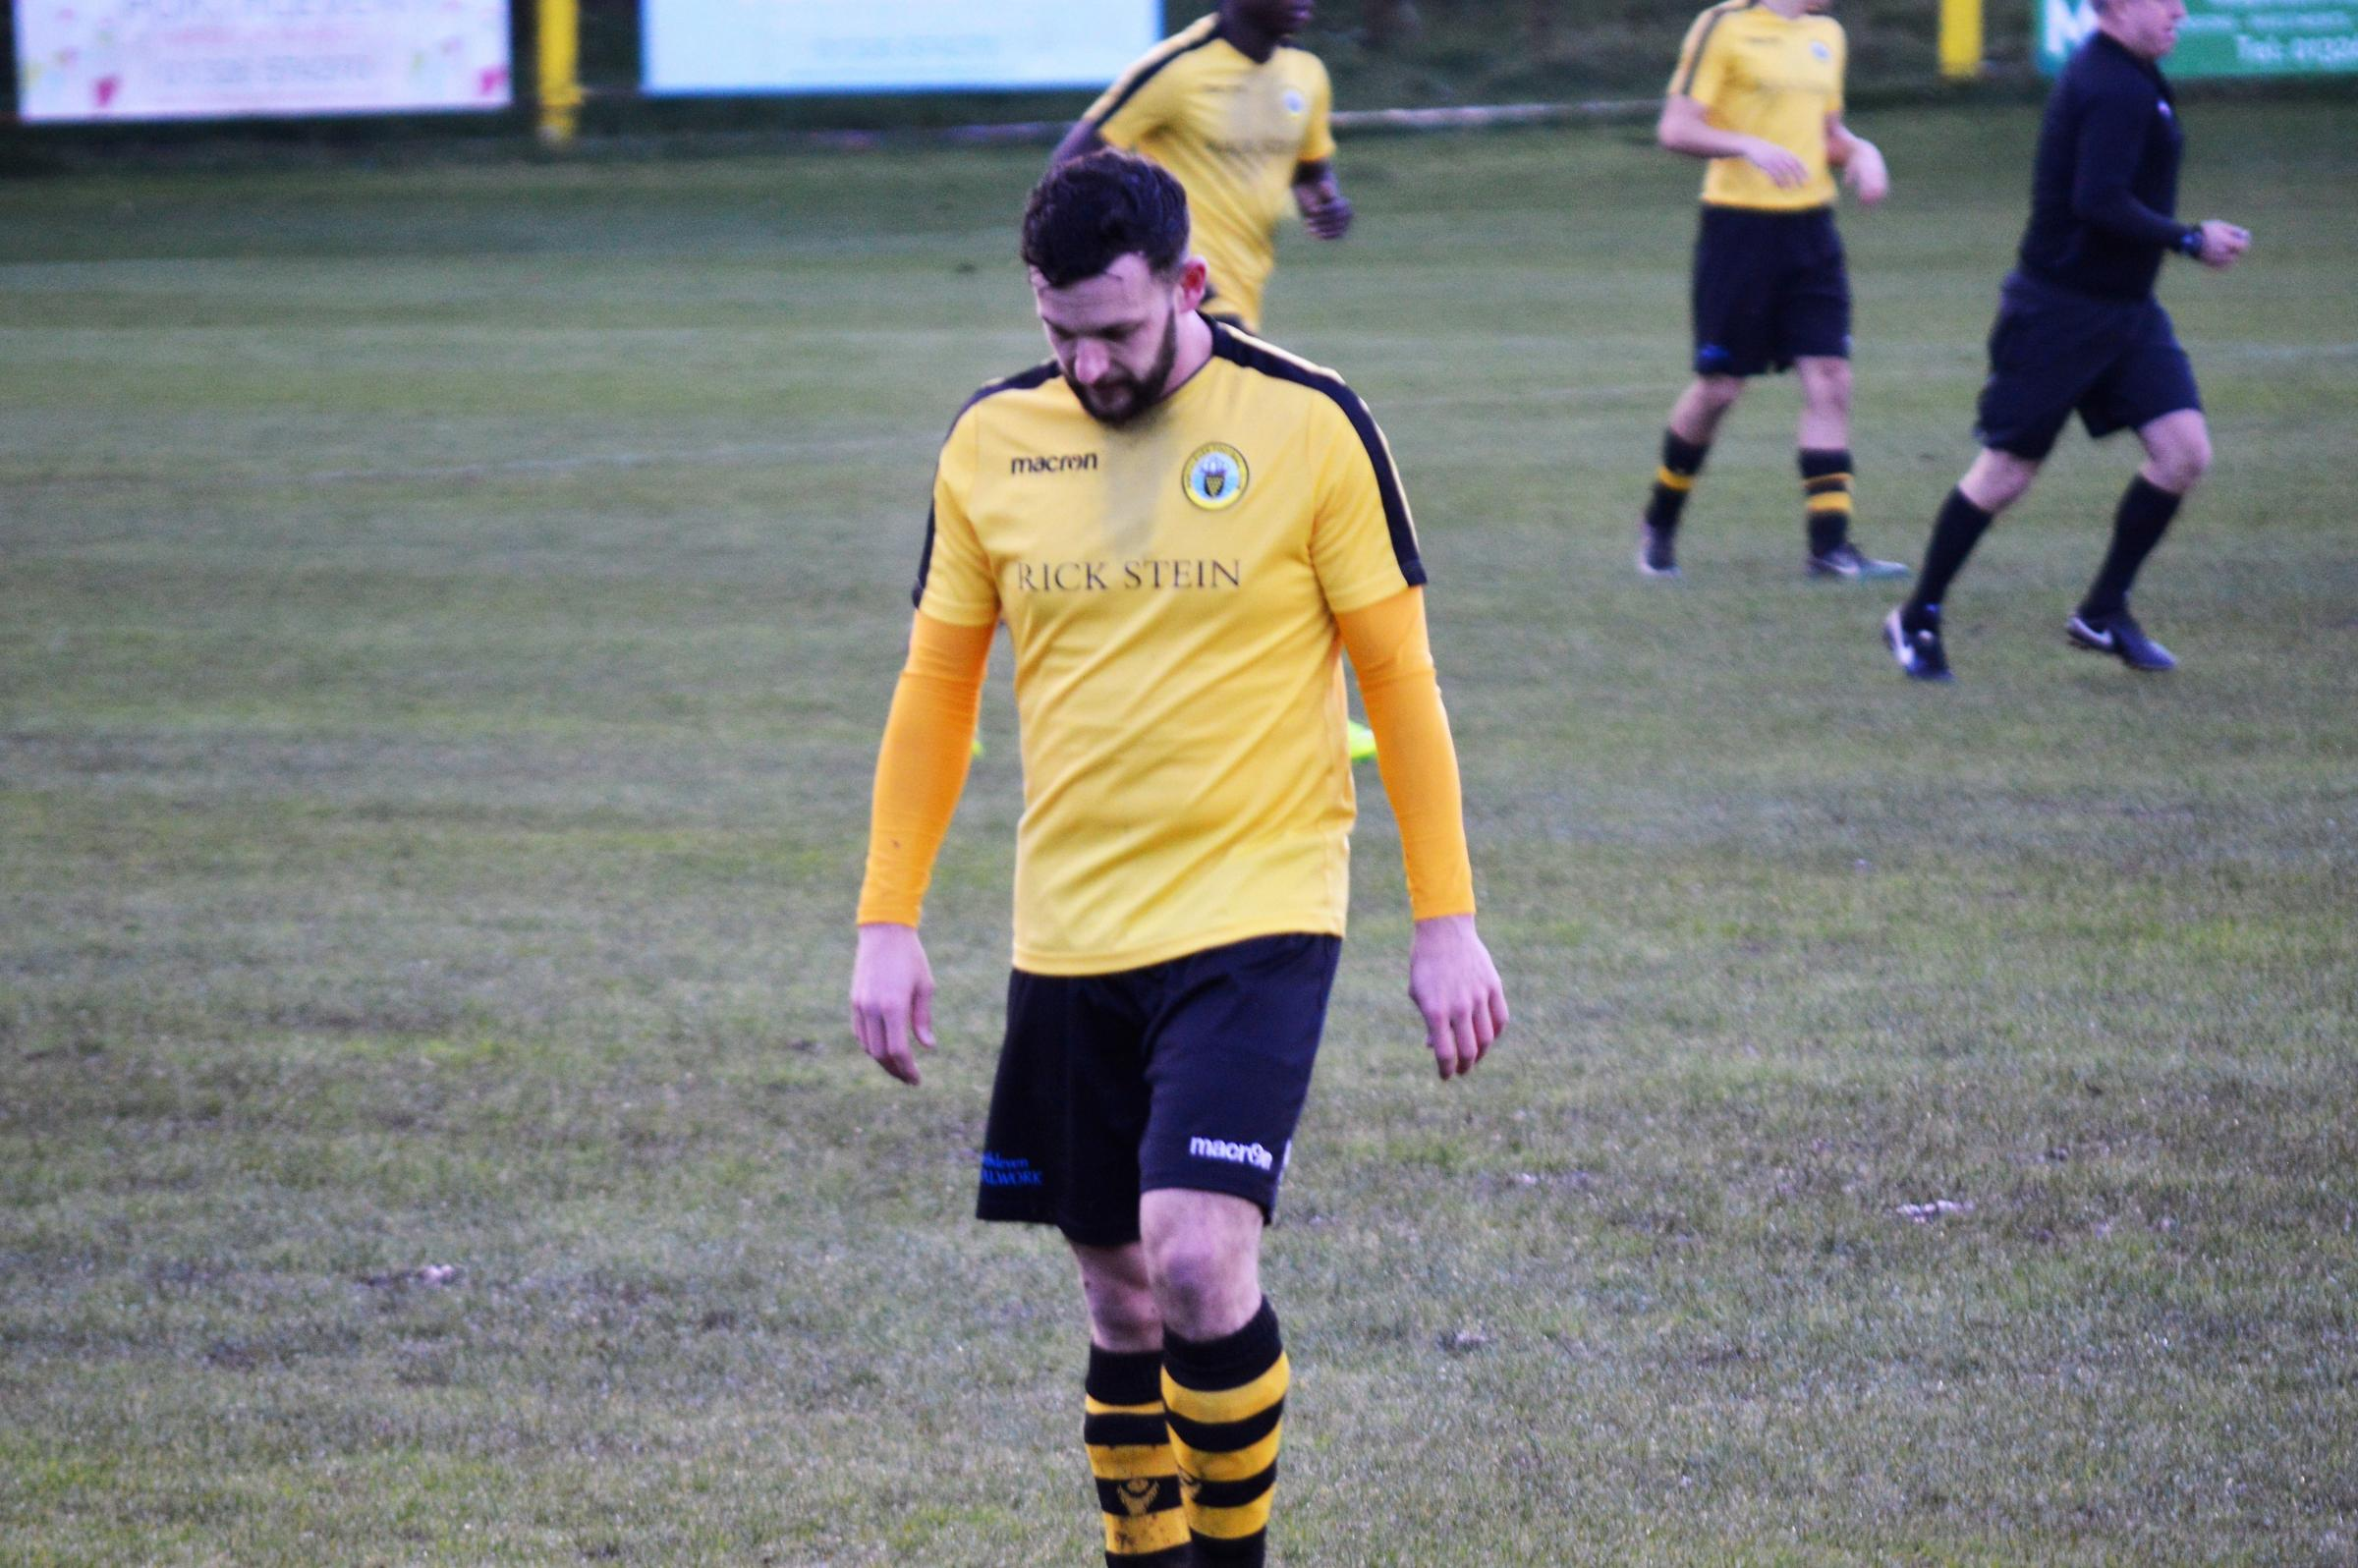 Rob Carey scored one of Porthleven's four goals in their 5-4 loss at Plymstock United on Saturday